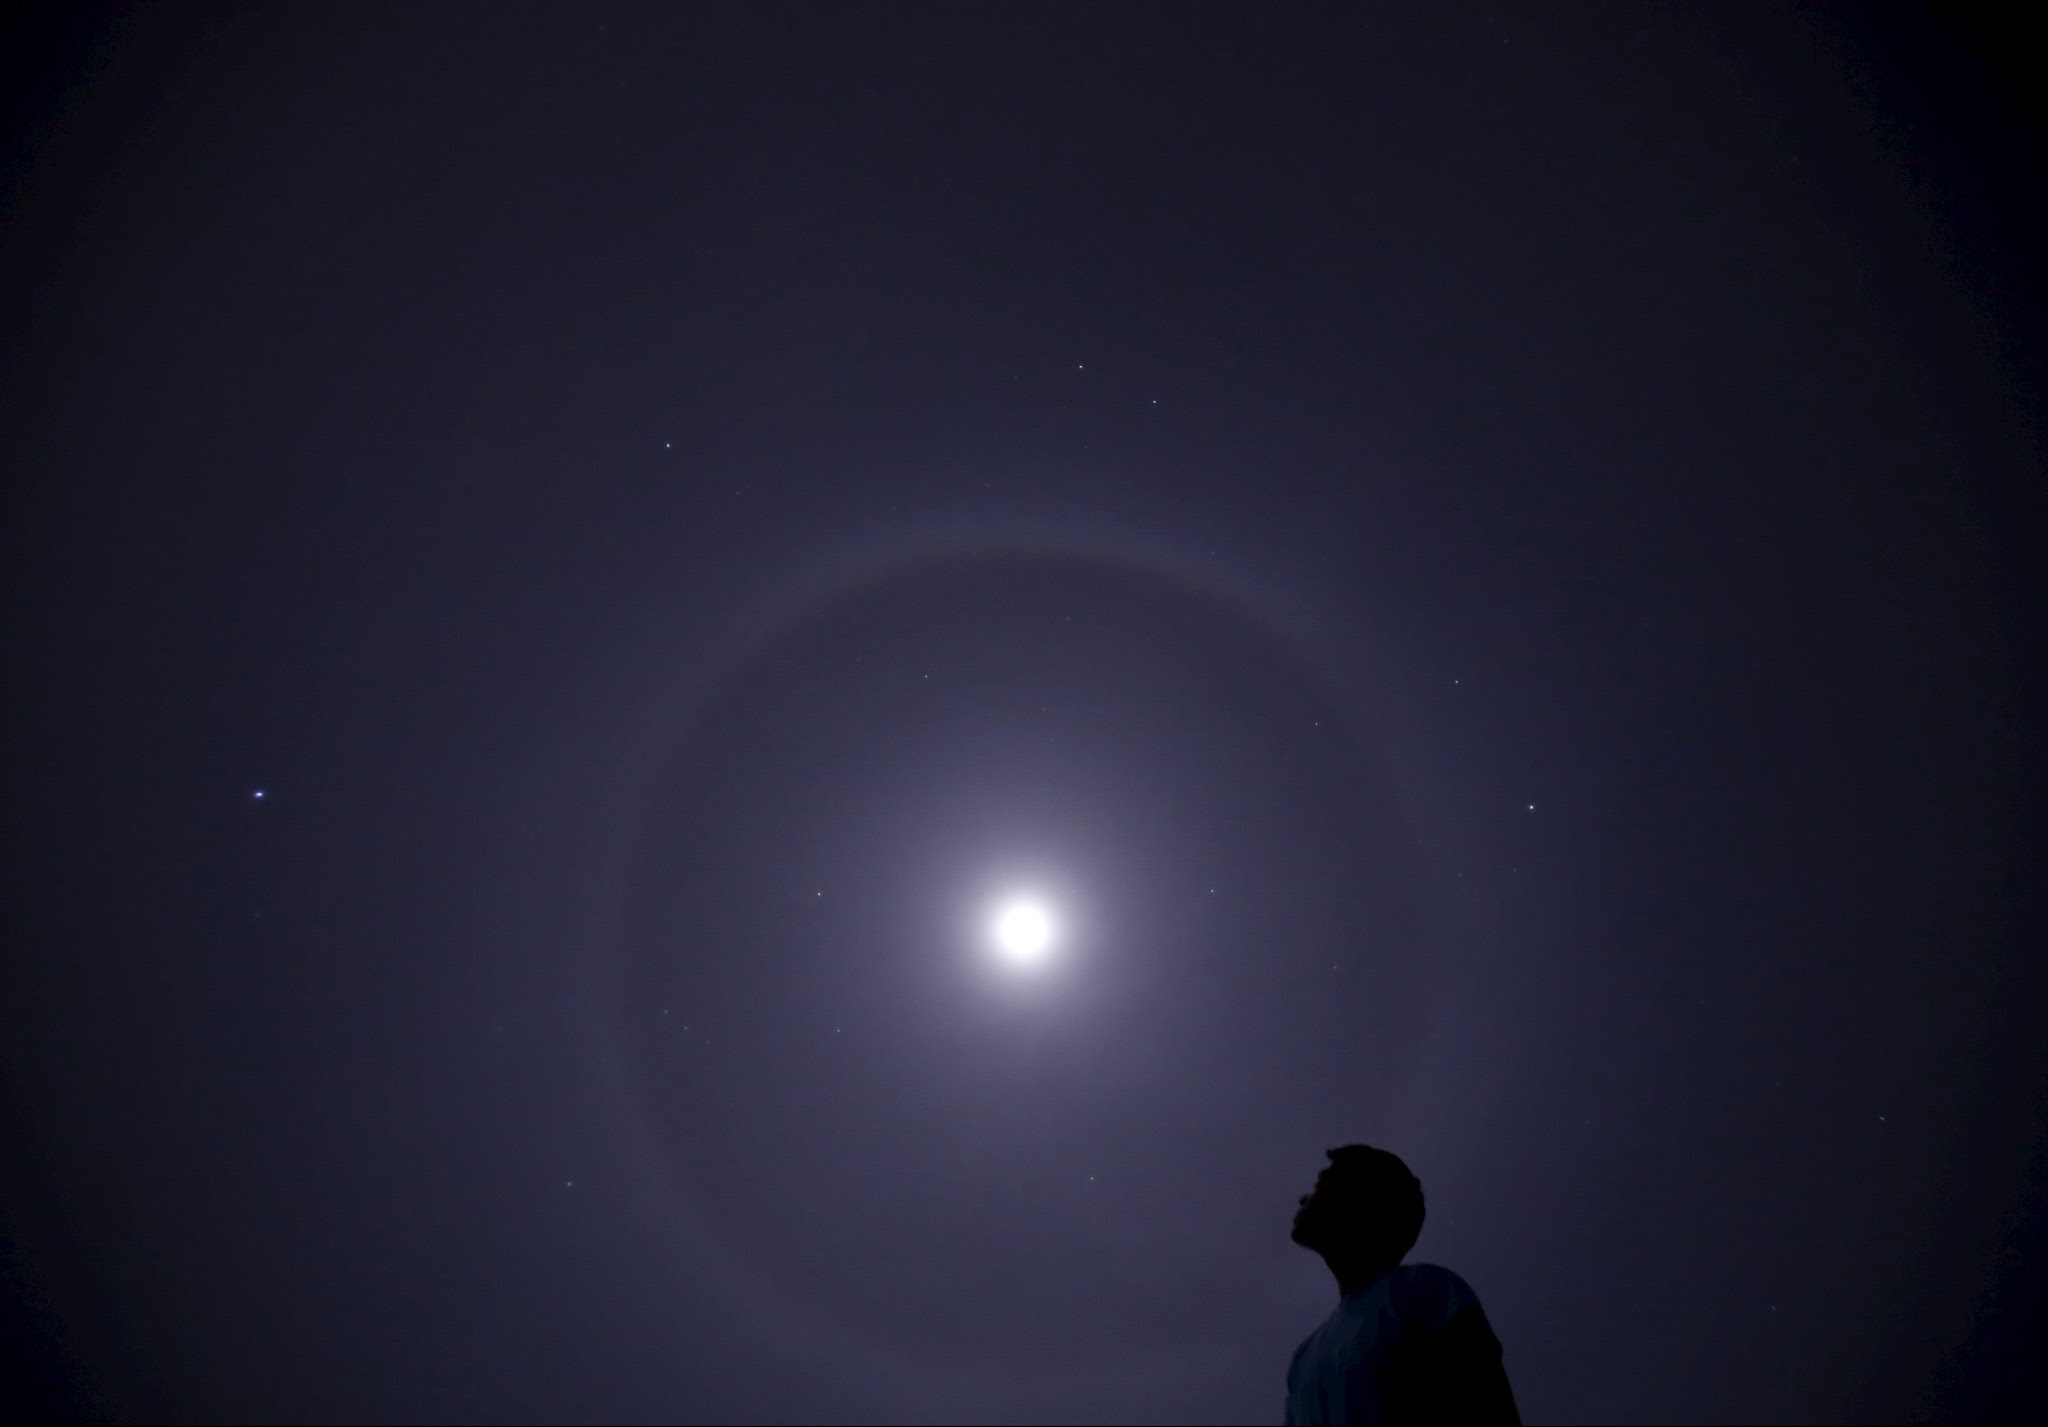 A man looks towards a lunar halo seen above the sky of Kathmandu...A man looks towards a lunar halo seen above the sky of Kathmandu, Nepal, March 15, 2016. REUTERS/Navesh Chitrakar